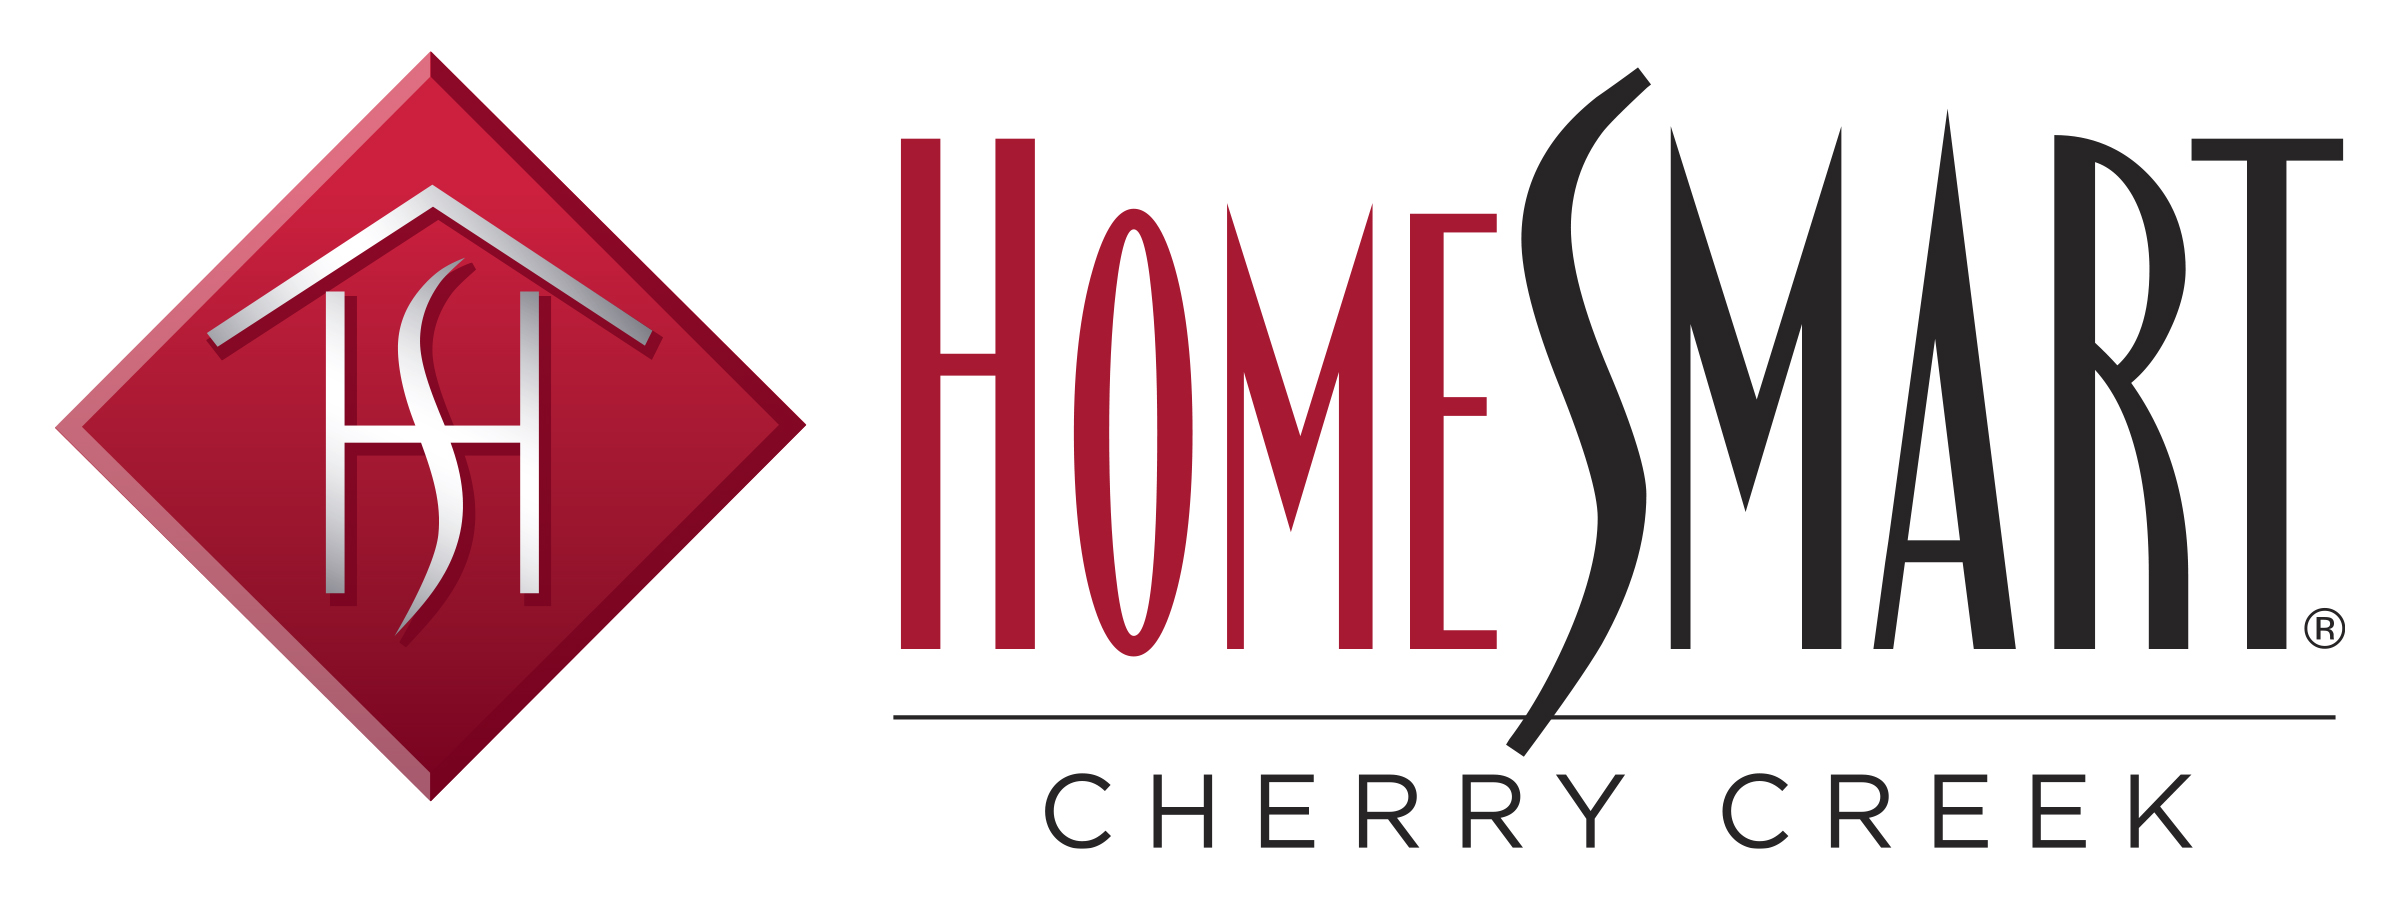 Home Smart Cherry Creek